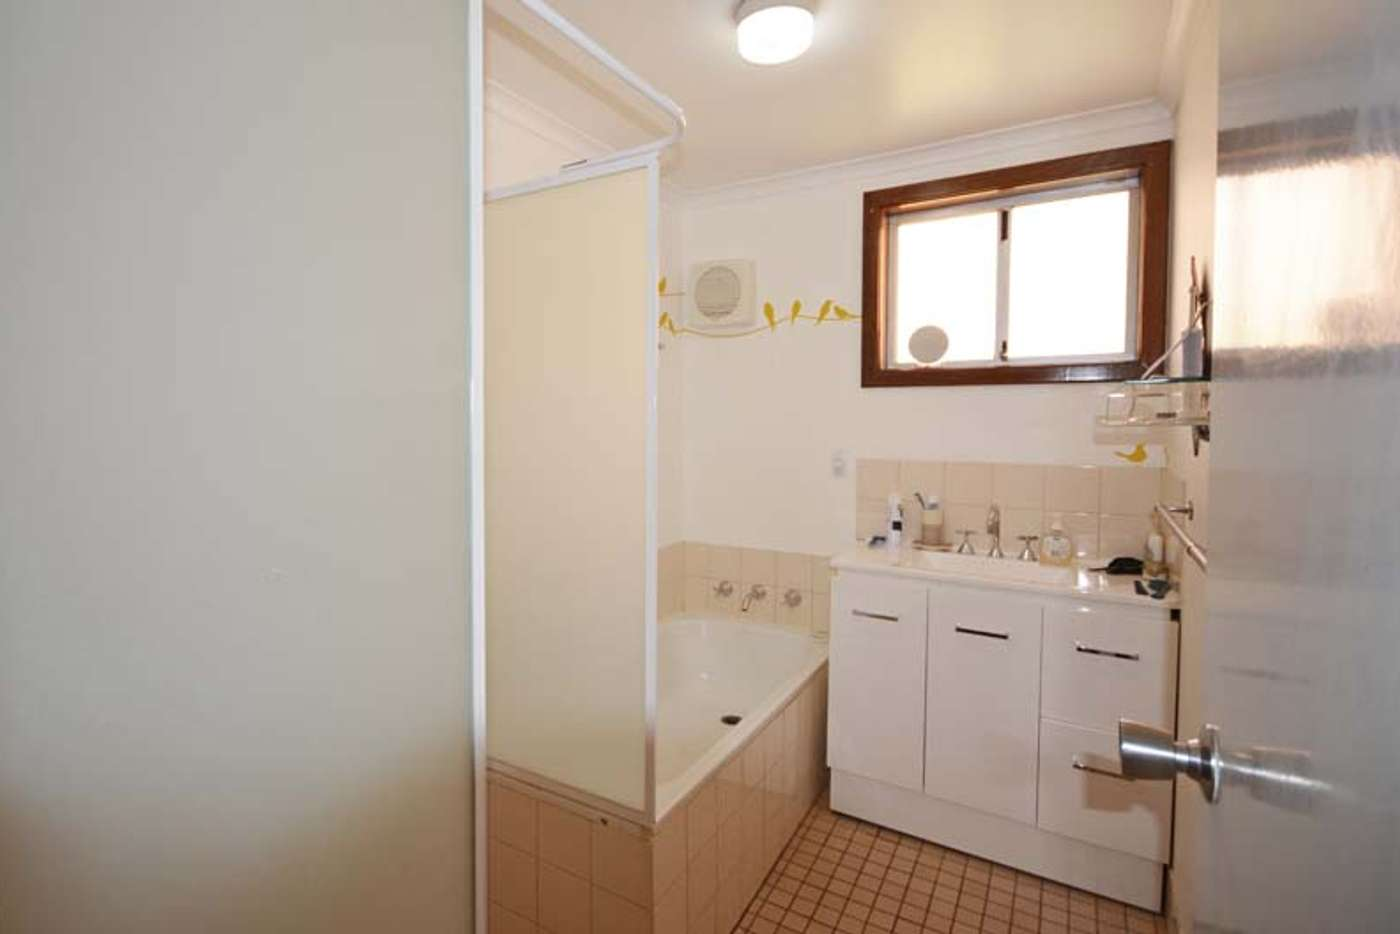 Seventh view of Homely house listing, 19 Kerr Street, Broome WA 6725